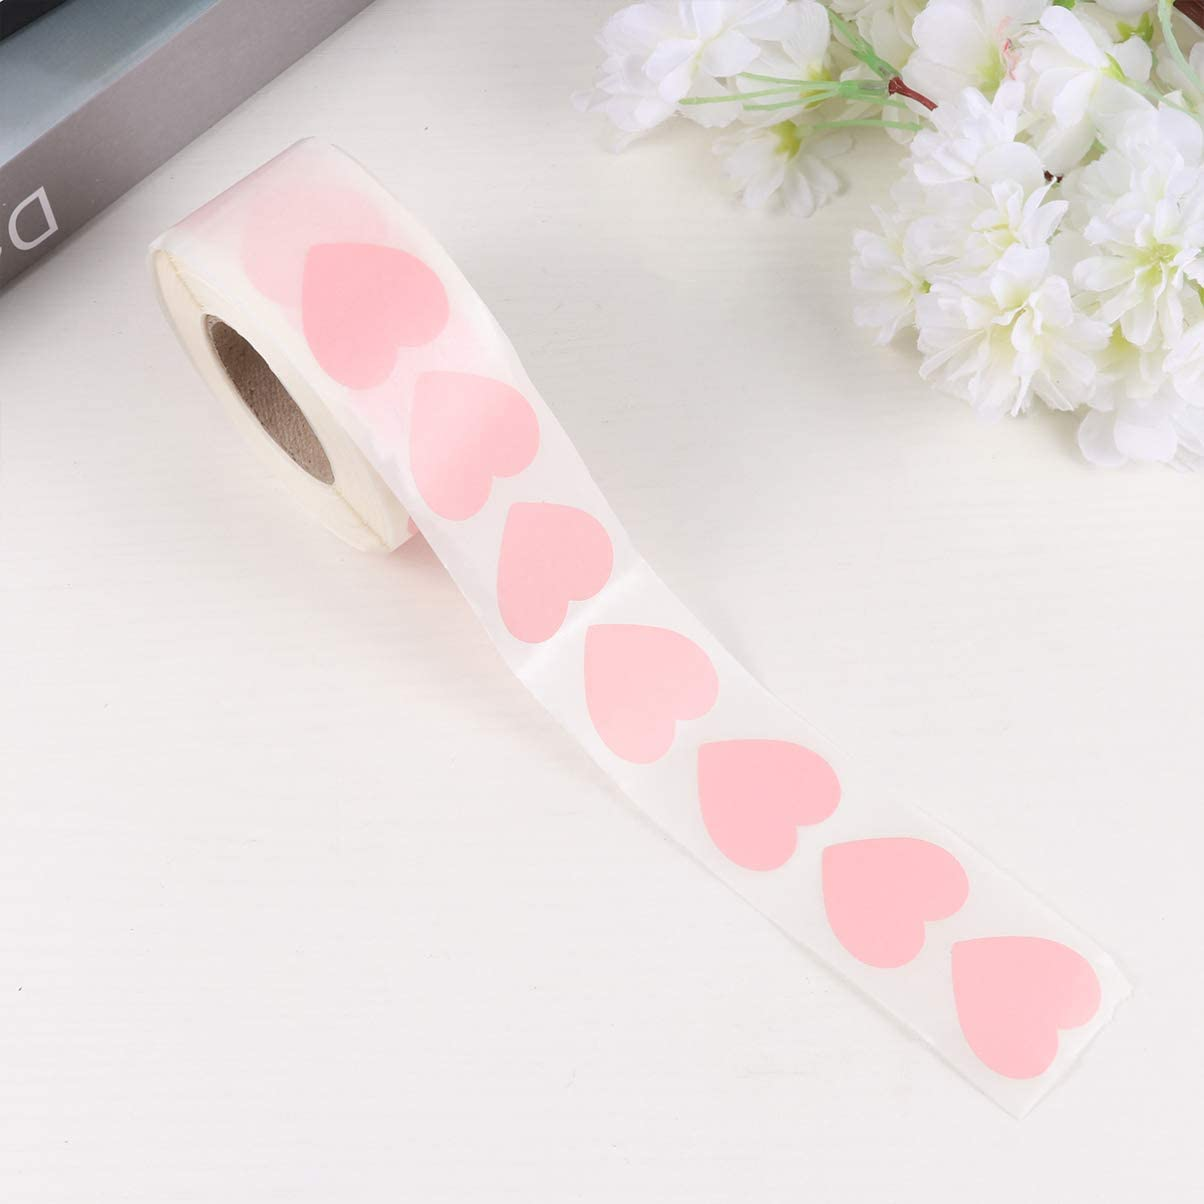 Amosfun Pink Love Heart Stickers Seal Label DIY Bag Self-Adhesive Sealing Stickers for Biscuit Candy Bag Packaging Envelope Valentines Day Party Supplies 1000 Pcs